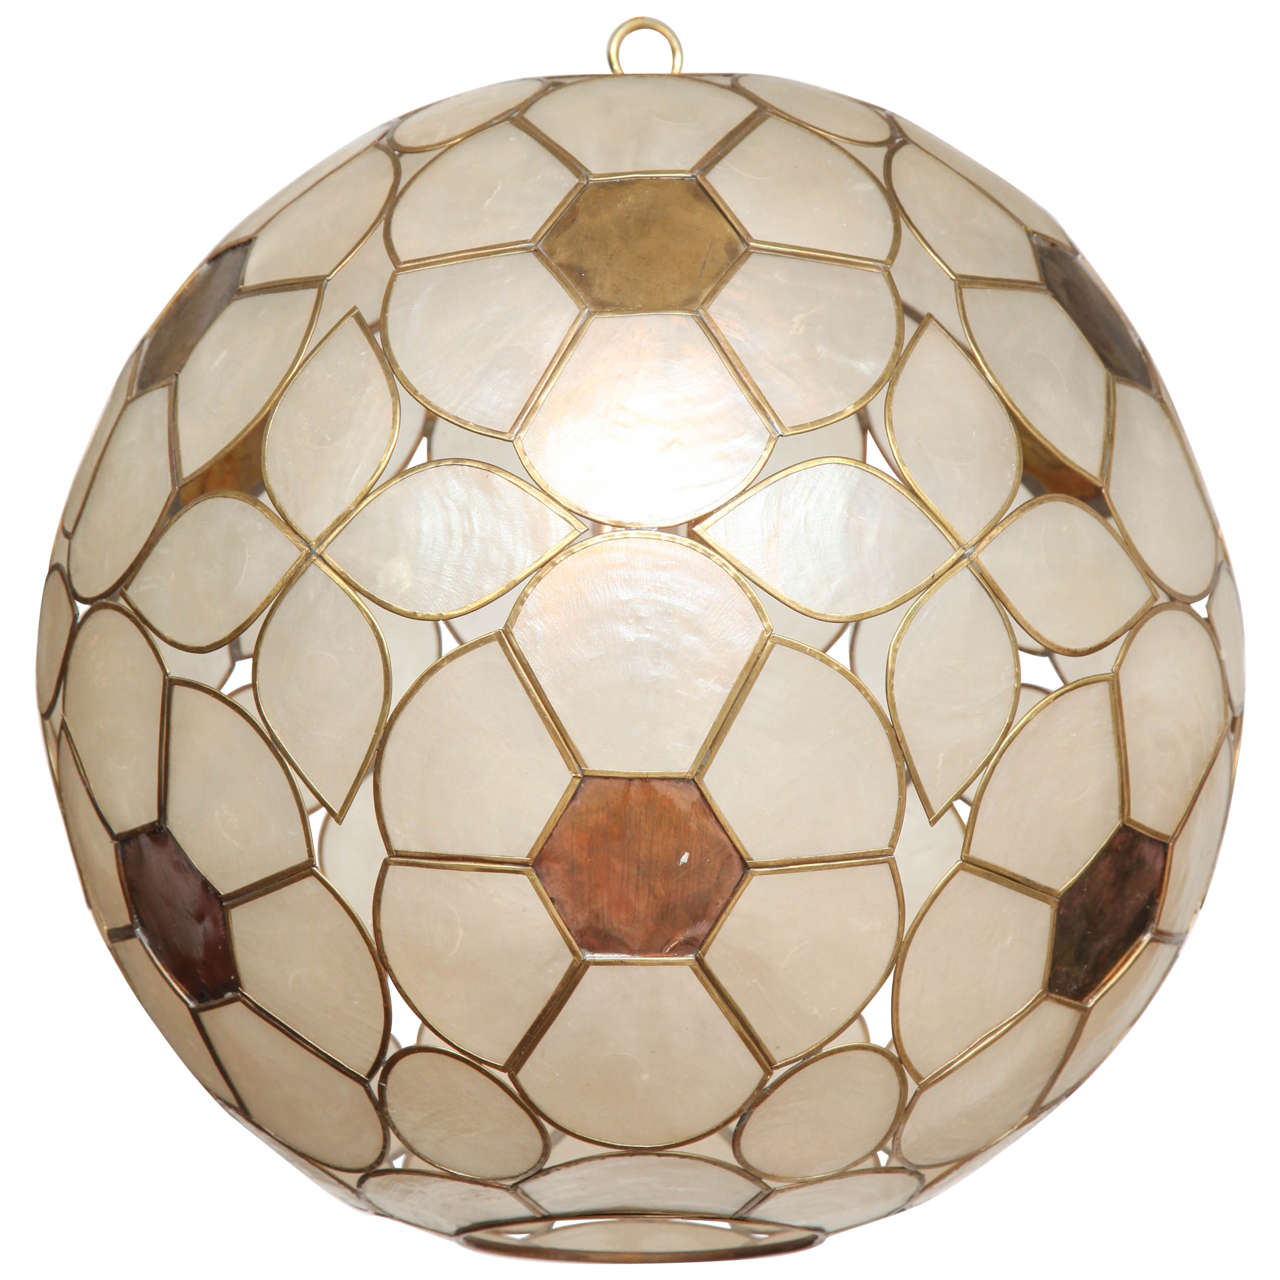 1960s capiz shell floral globe light fixture for sale at 1stdibs 1960s capiz shell floral globe light fixture 1 arubaitofo Image collections